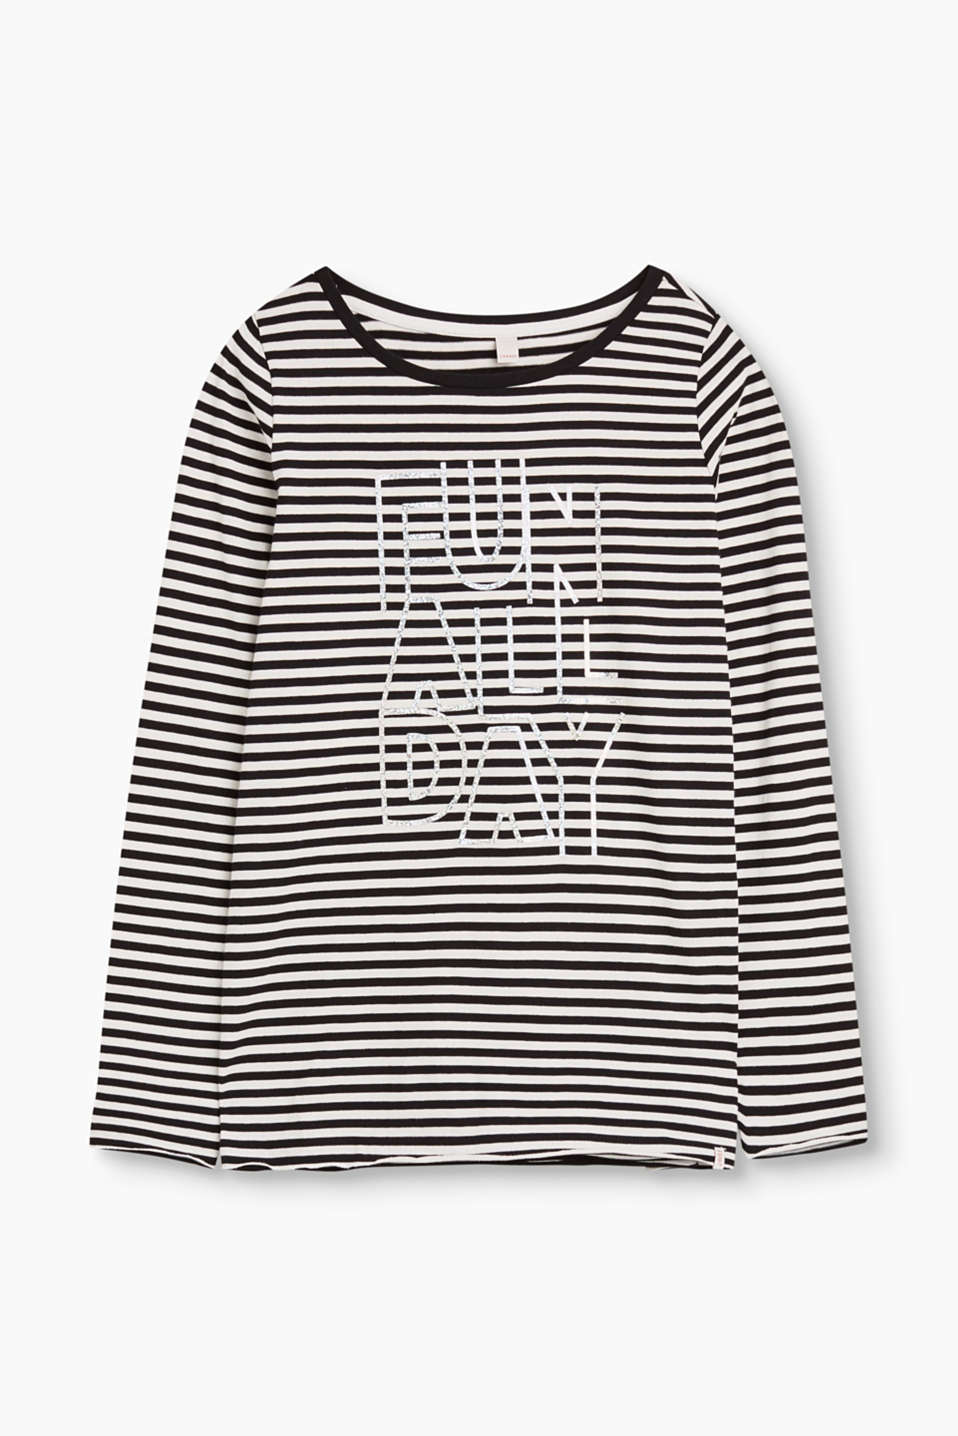 FUN ALL DAY - the upbeat statement gives this striped, cotton long sleeve top its particularly positive vibe.